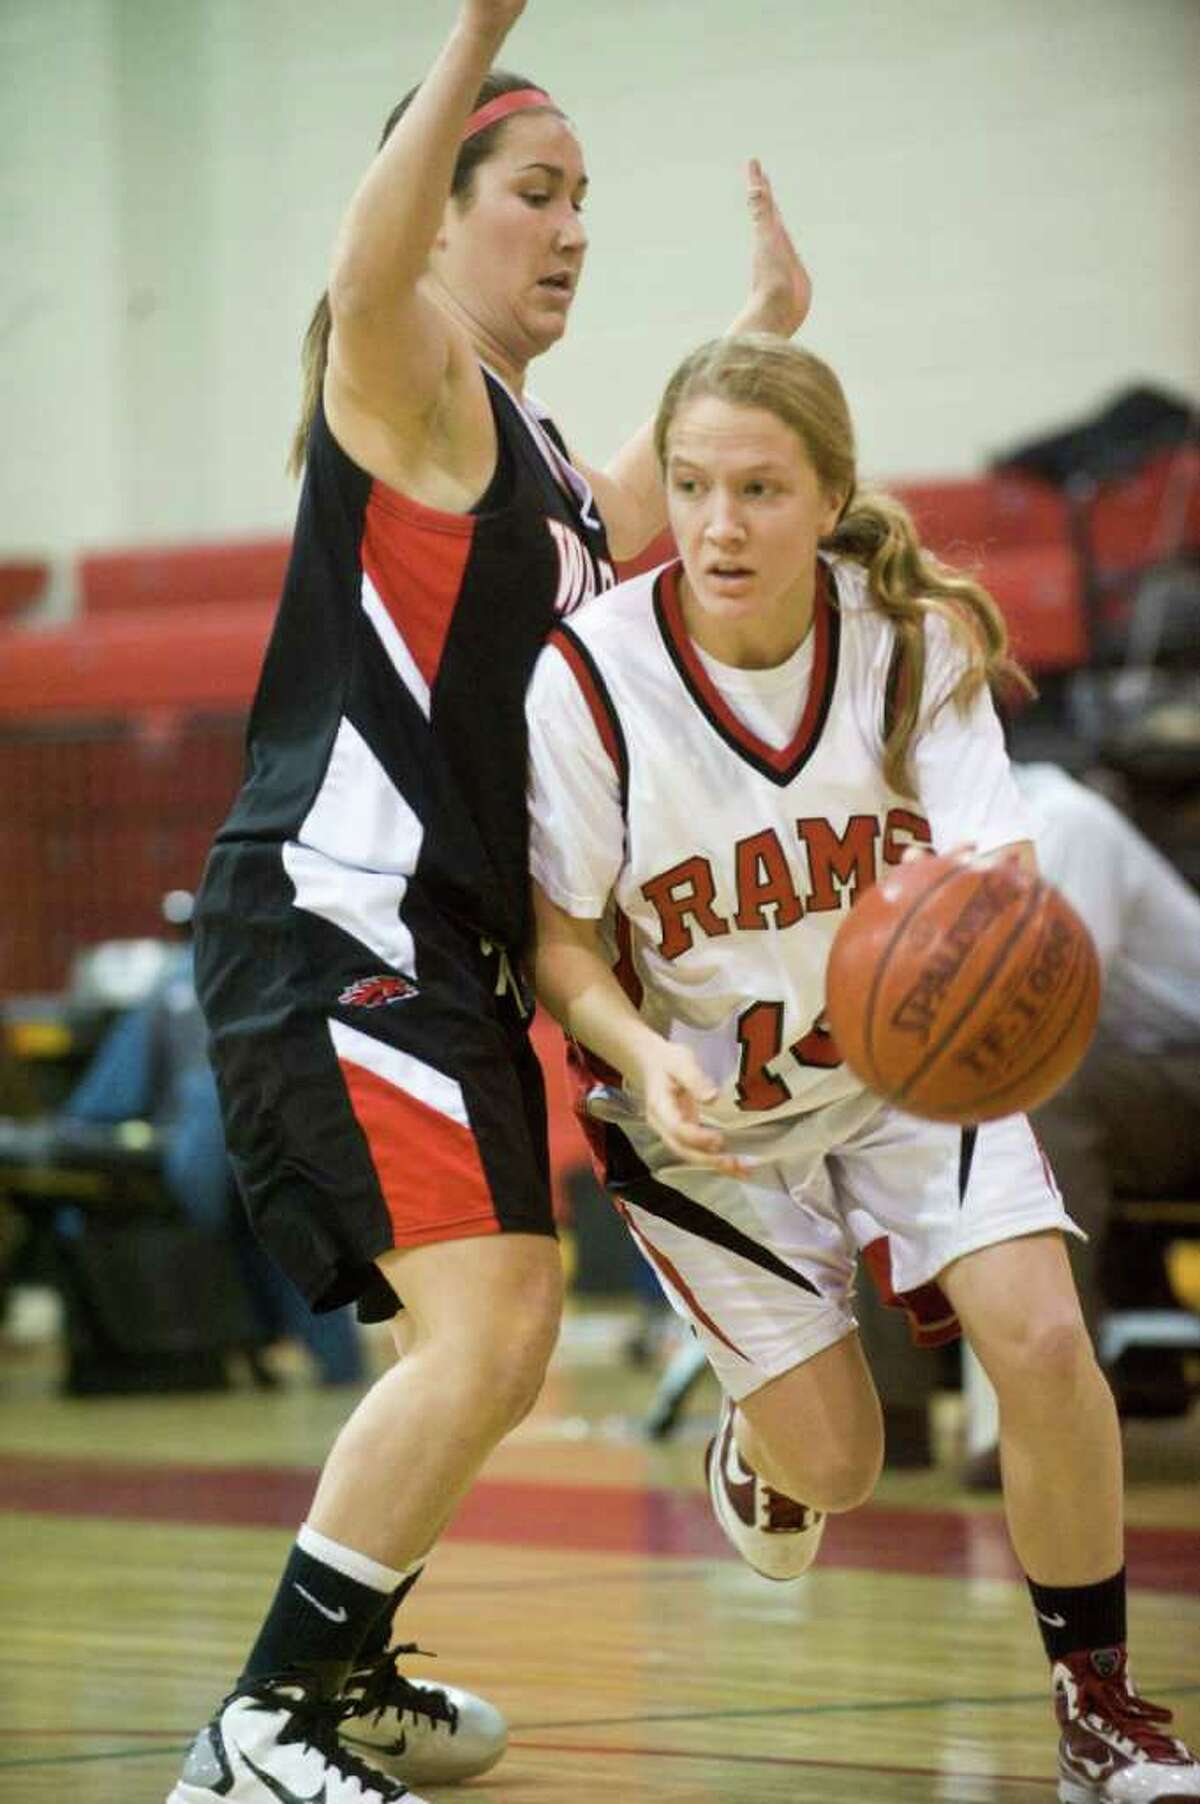 New Canaan's Sarah Mannelly moves the ball past Warde's Taylor Bargmann as New Canaan hosts Fairfield Warde in a girls basketball game in New Canaan, Conn., February 10, 2011.